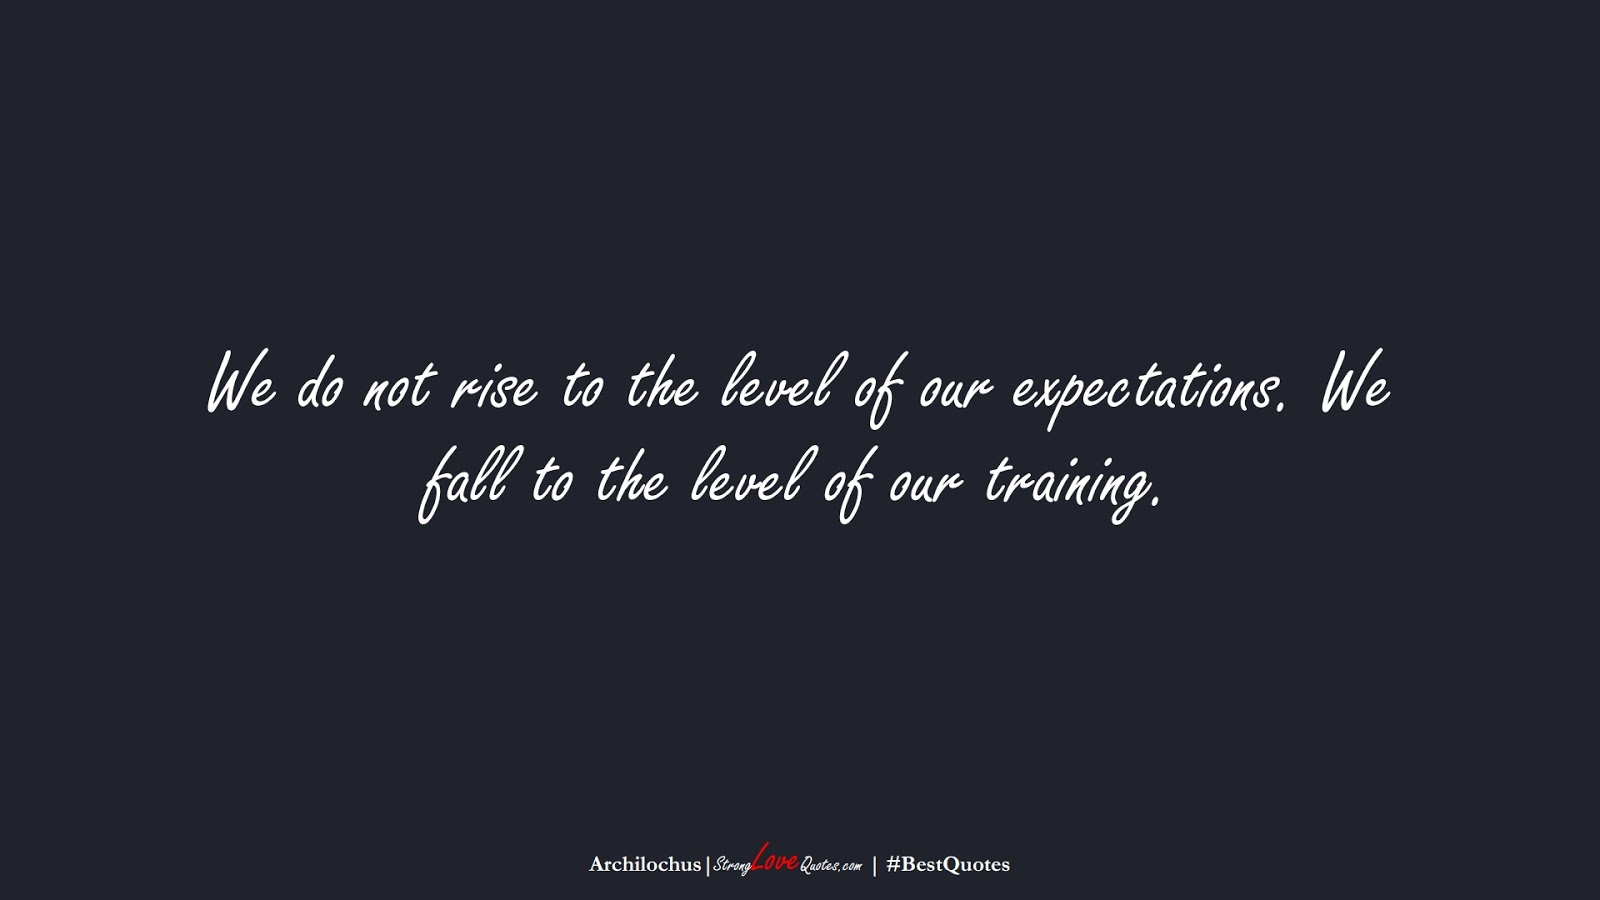 We do not rise to the level of our expectations. We fall to the level of our training. (Archilochus);  #BestQuotes